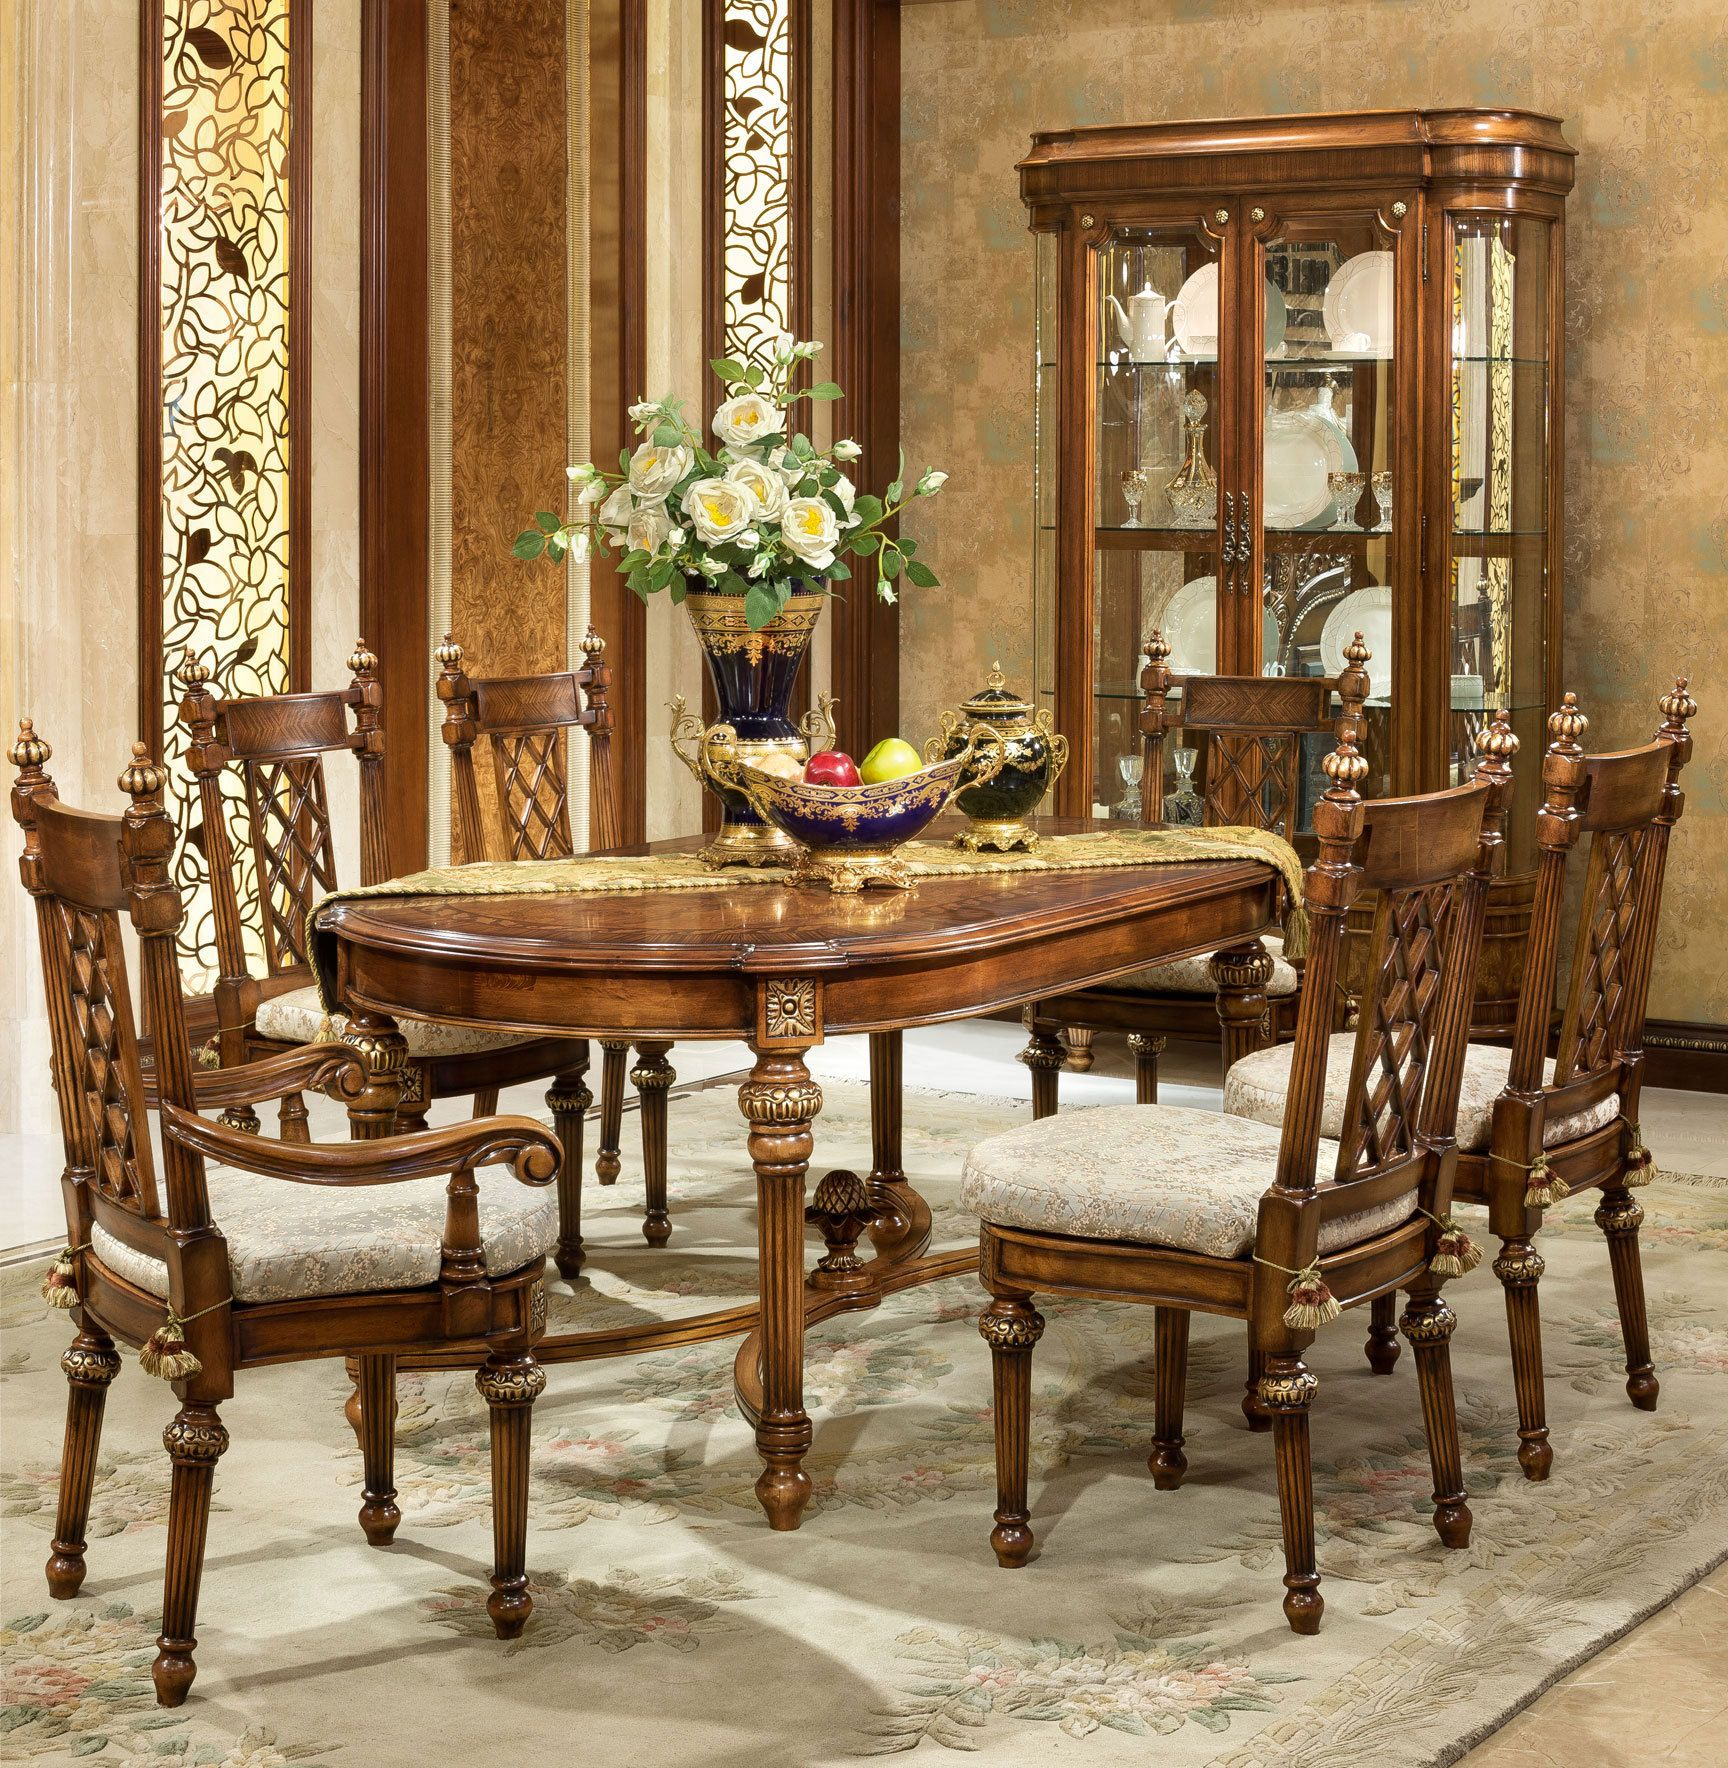 Oak Dining Room Sets With Hutch: Ascot Oval Dining Room Set